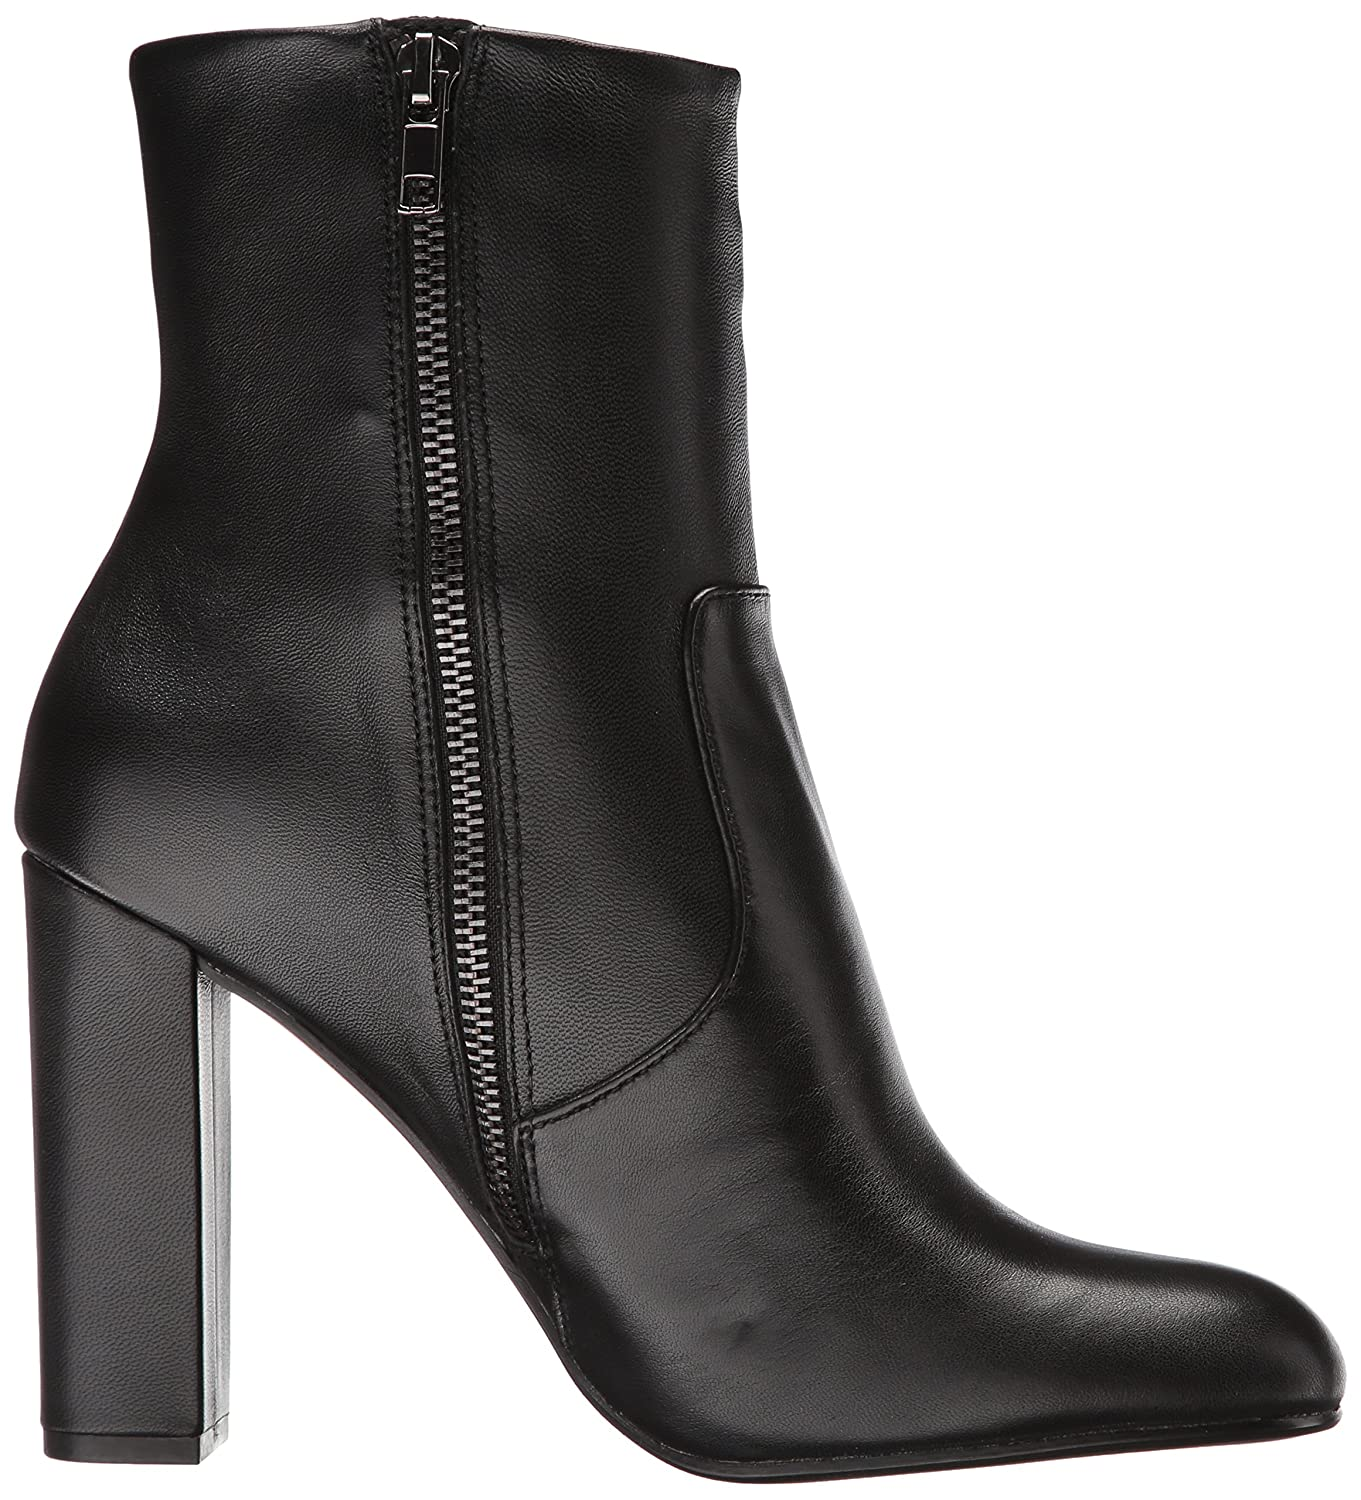 Steve Madden B073HCDVLB Women's Editor Ankle Boot B073HCDVLB Madden 10 B(M) US|Black Leather 9a6095